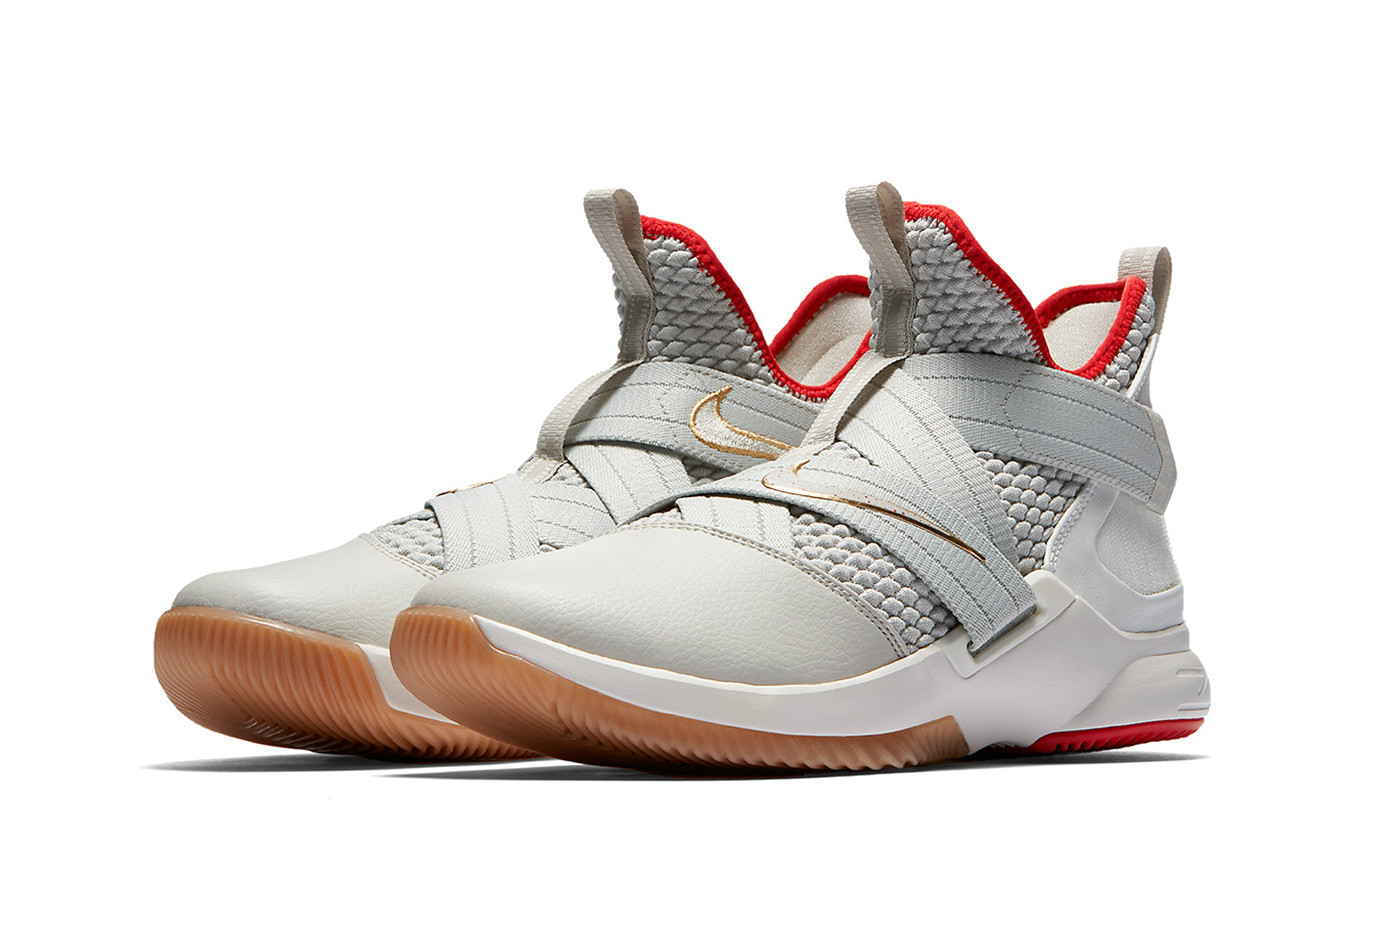 Nike LeBron Soldier 12 New Colorway